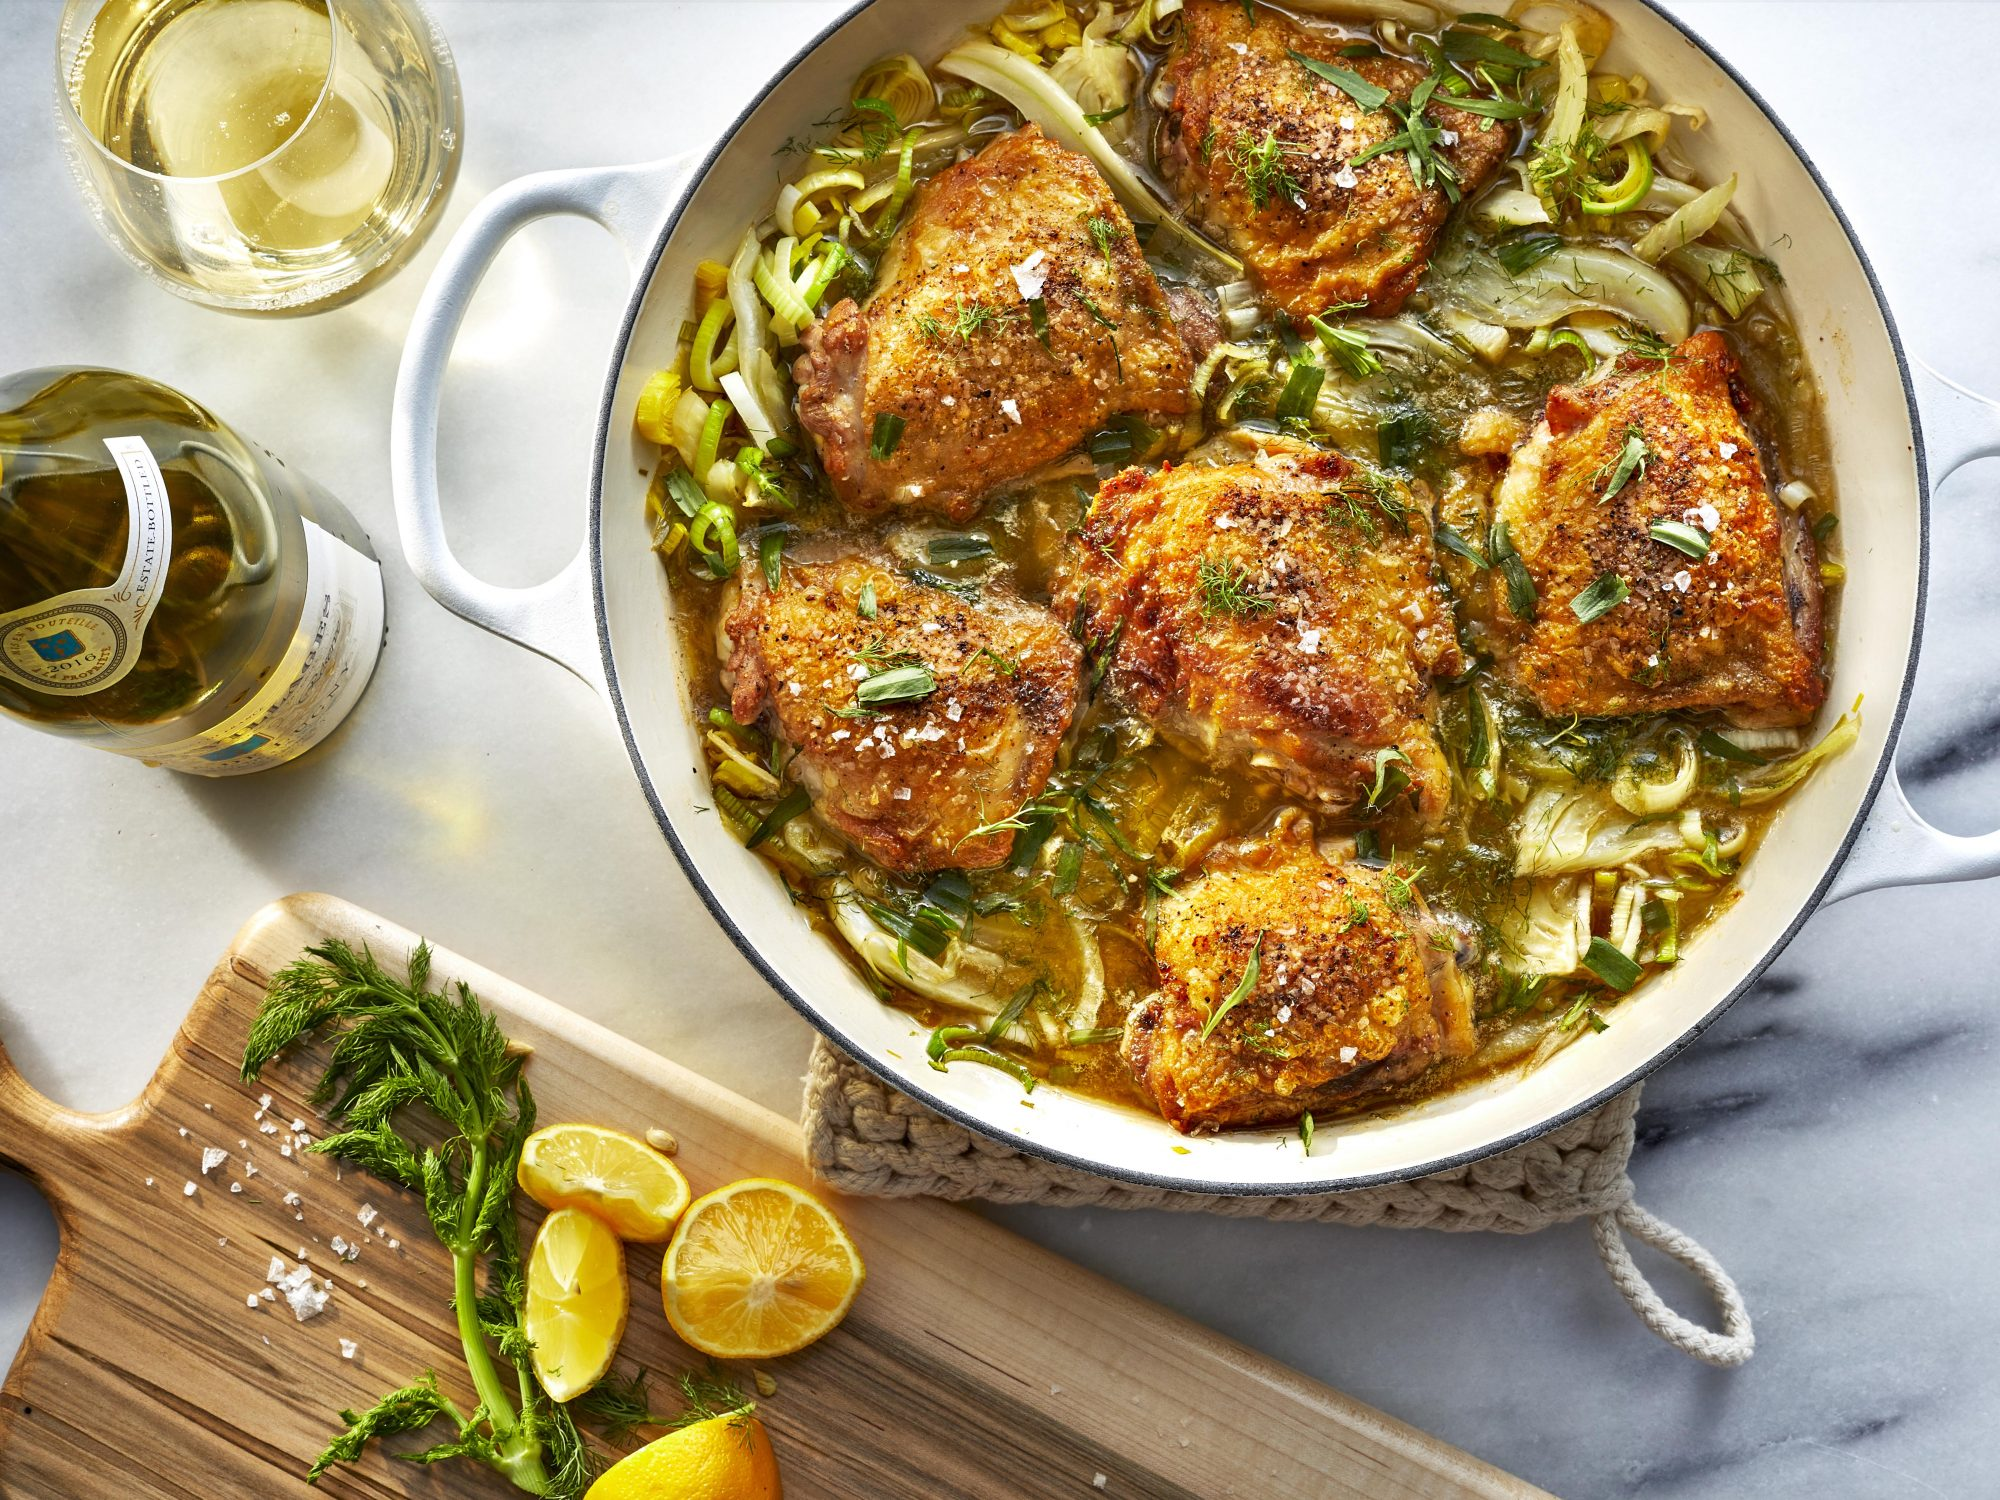 Brothy Braised Chicken Thighs with Fennel and Pernod